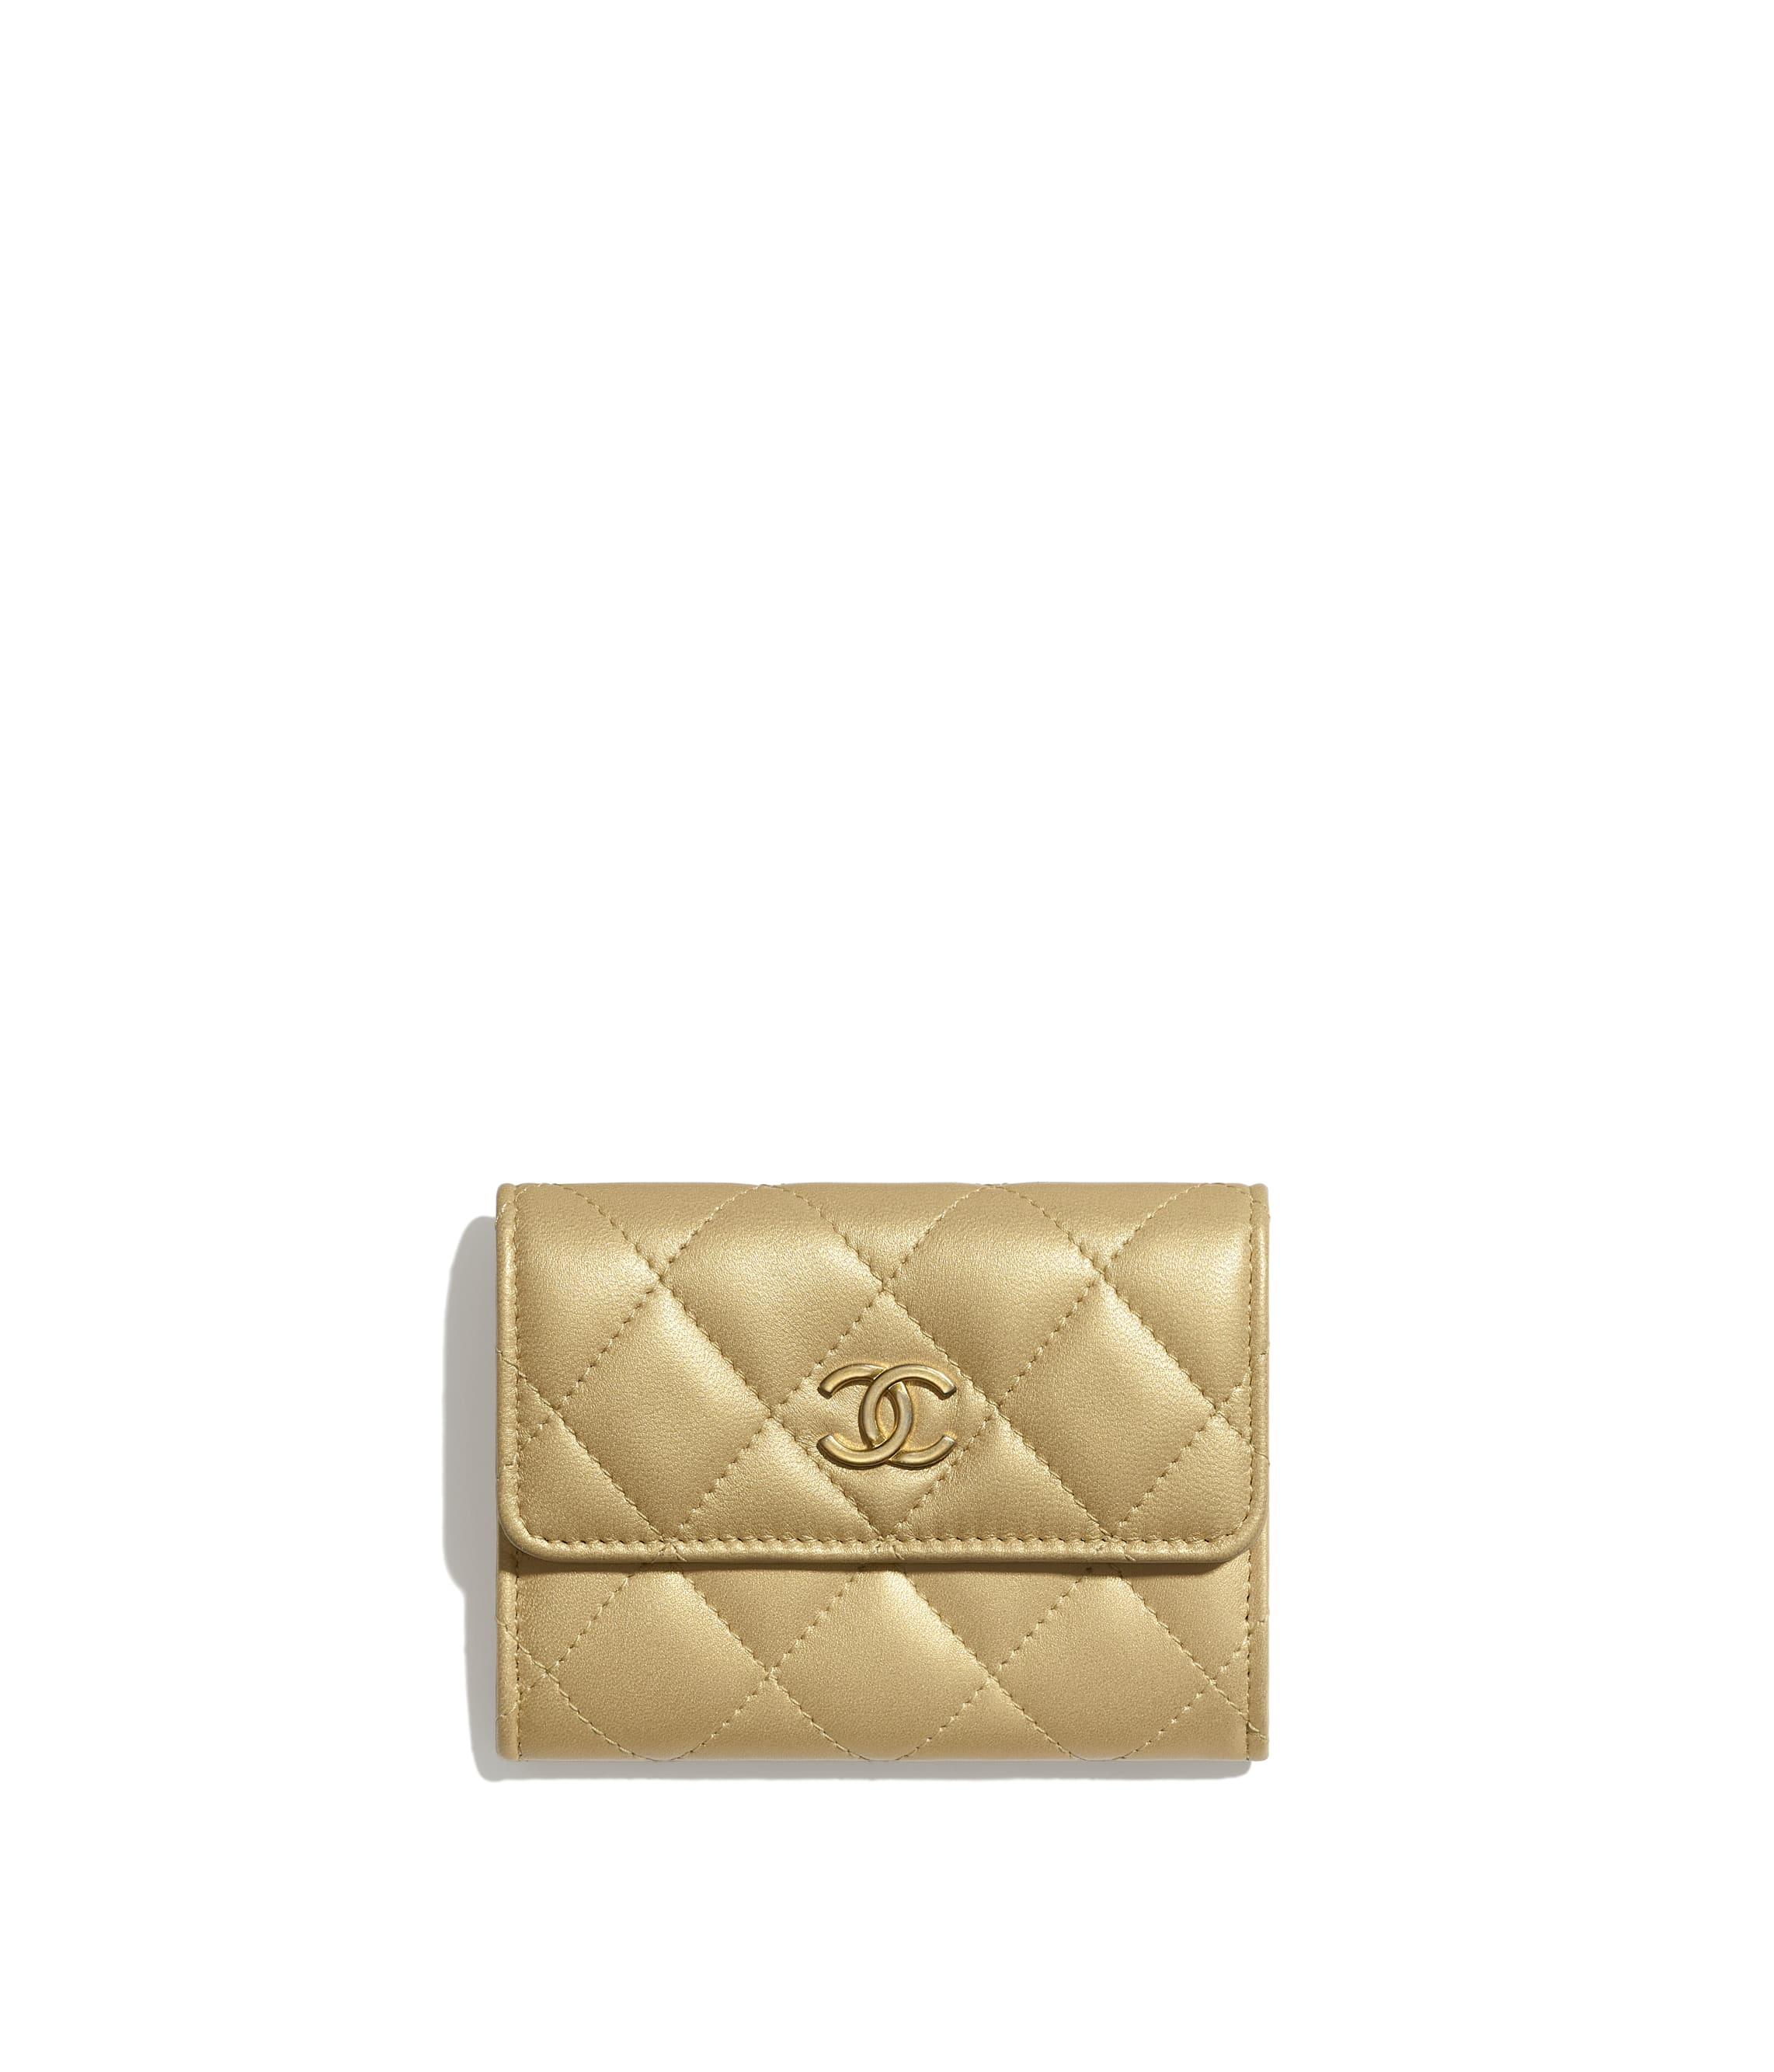 d116b54b2be5 Coin Purses - Small Leather Goods - CHANEL